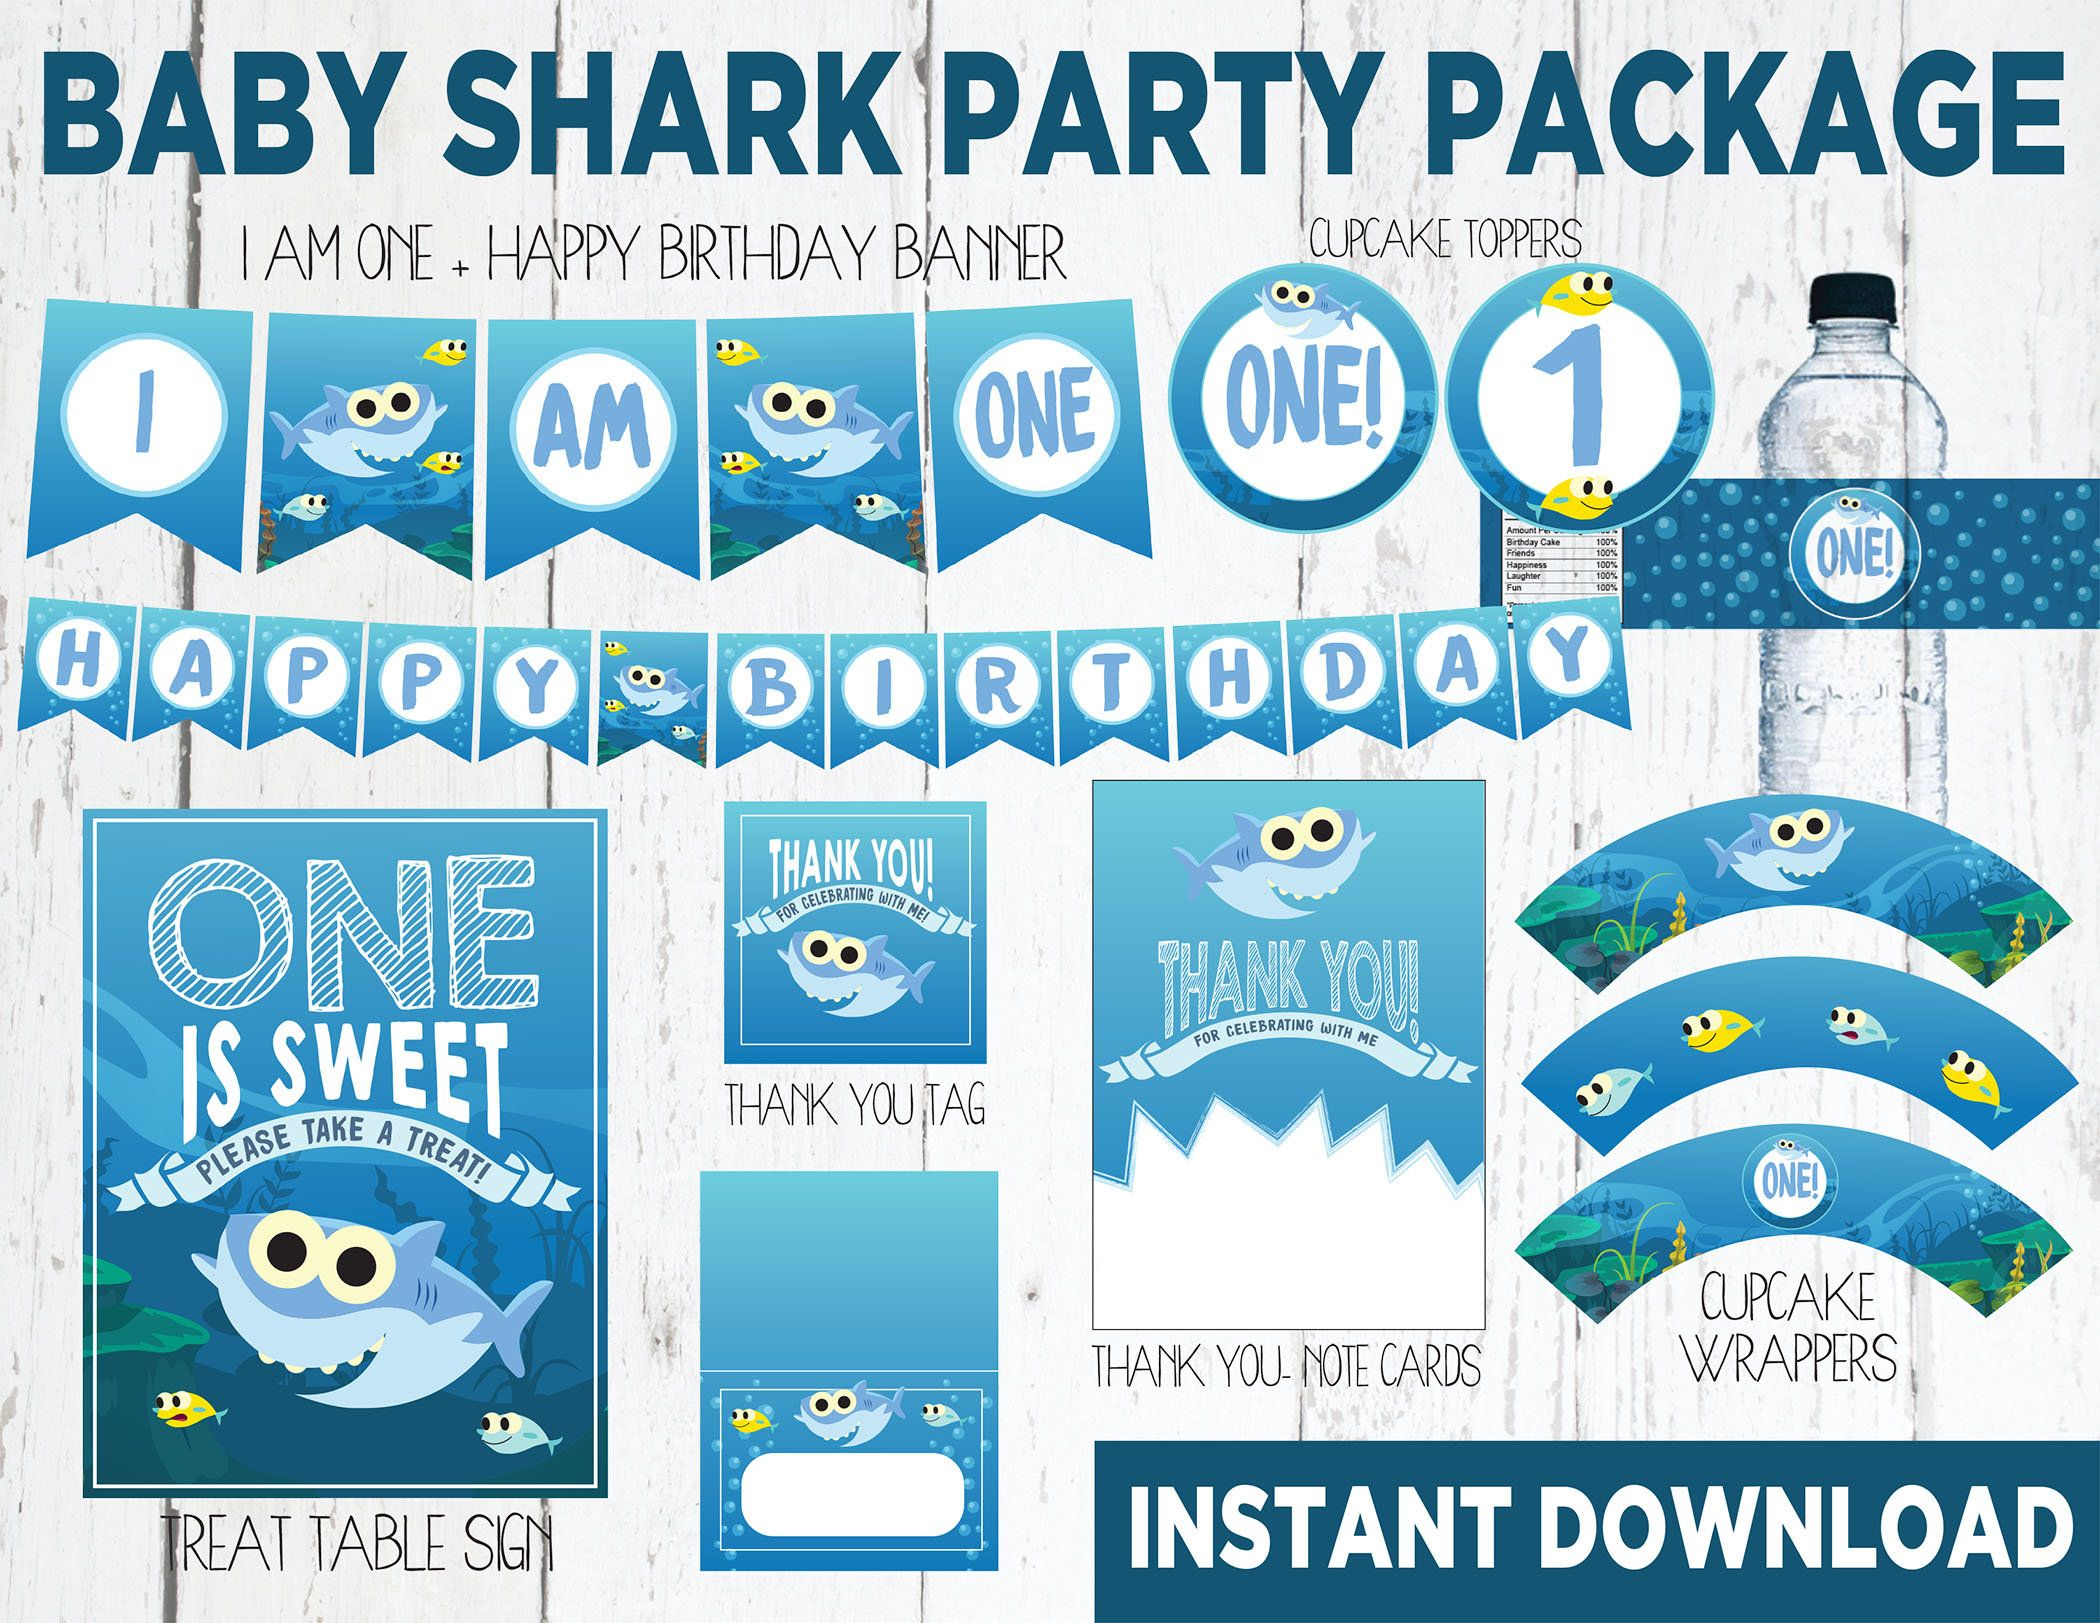 Baby Shark INSTANT DOWNLOAD Decor Package First Birthday From Super Simple Songs